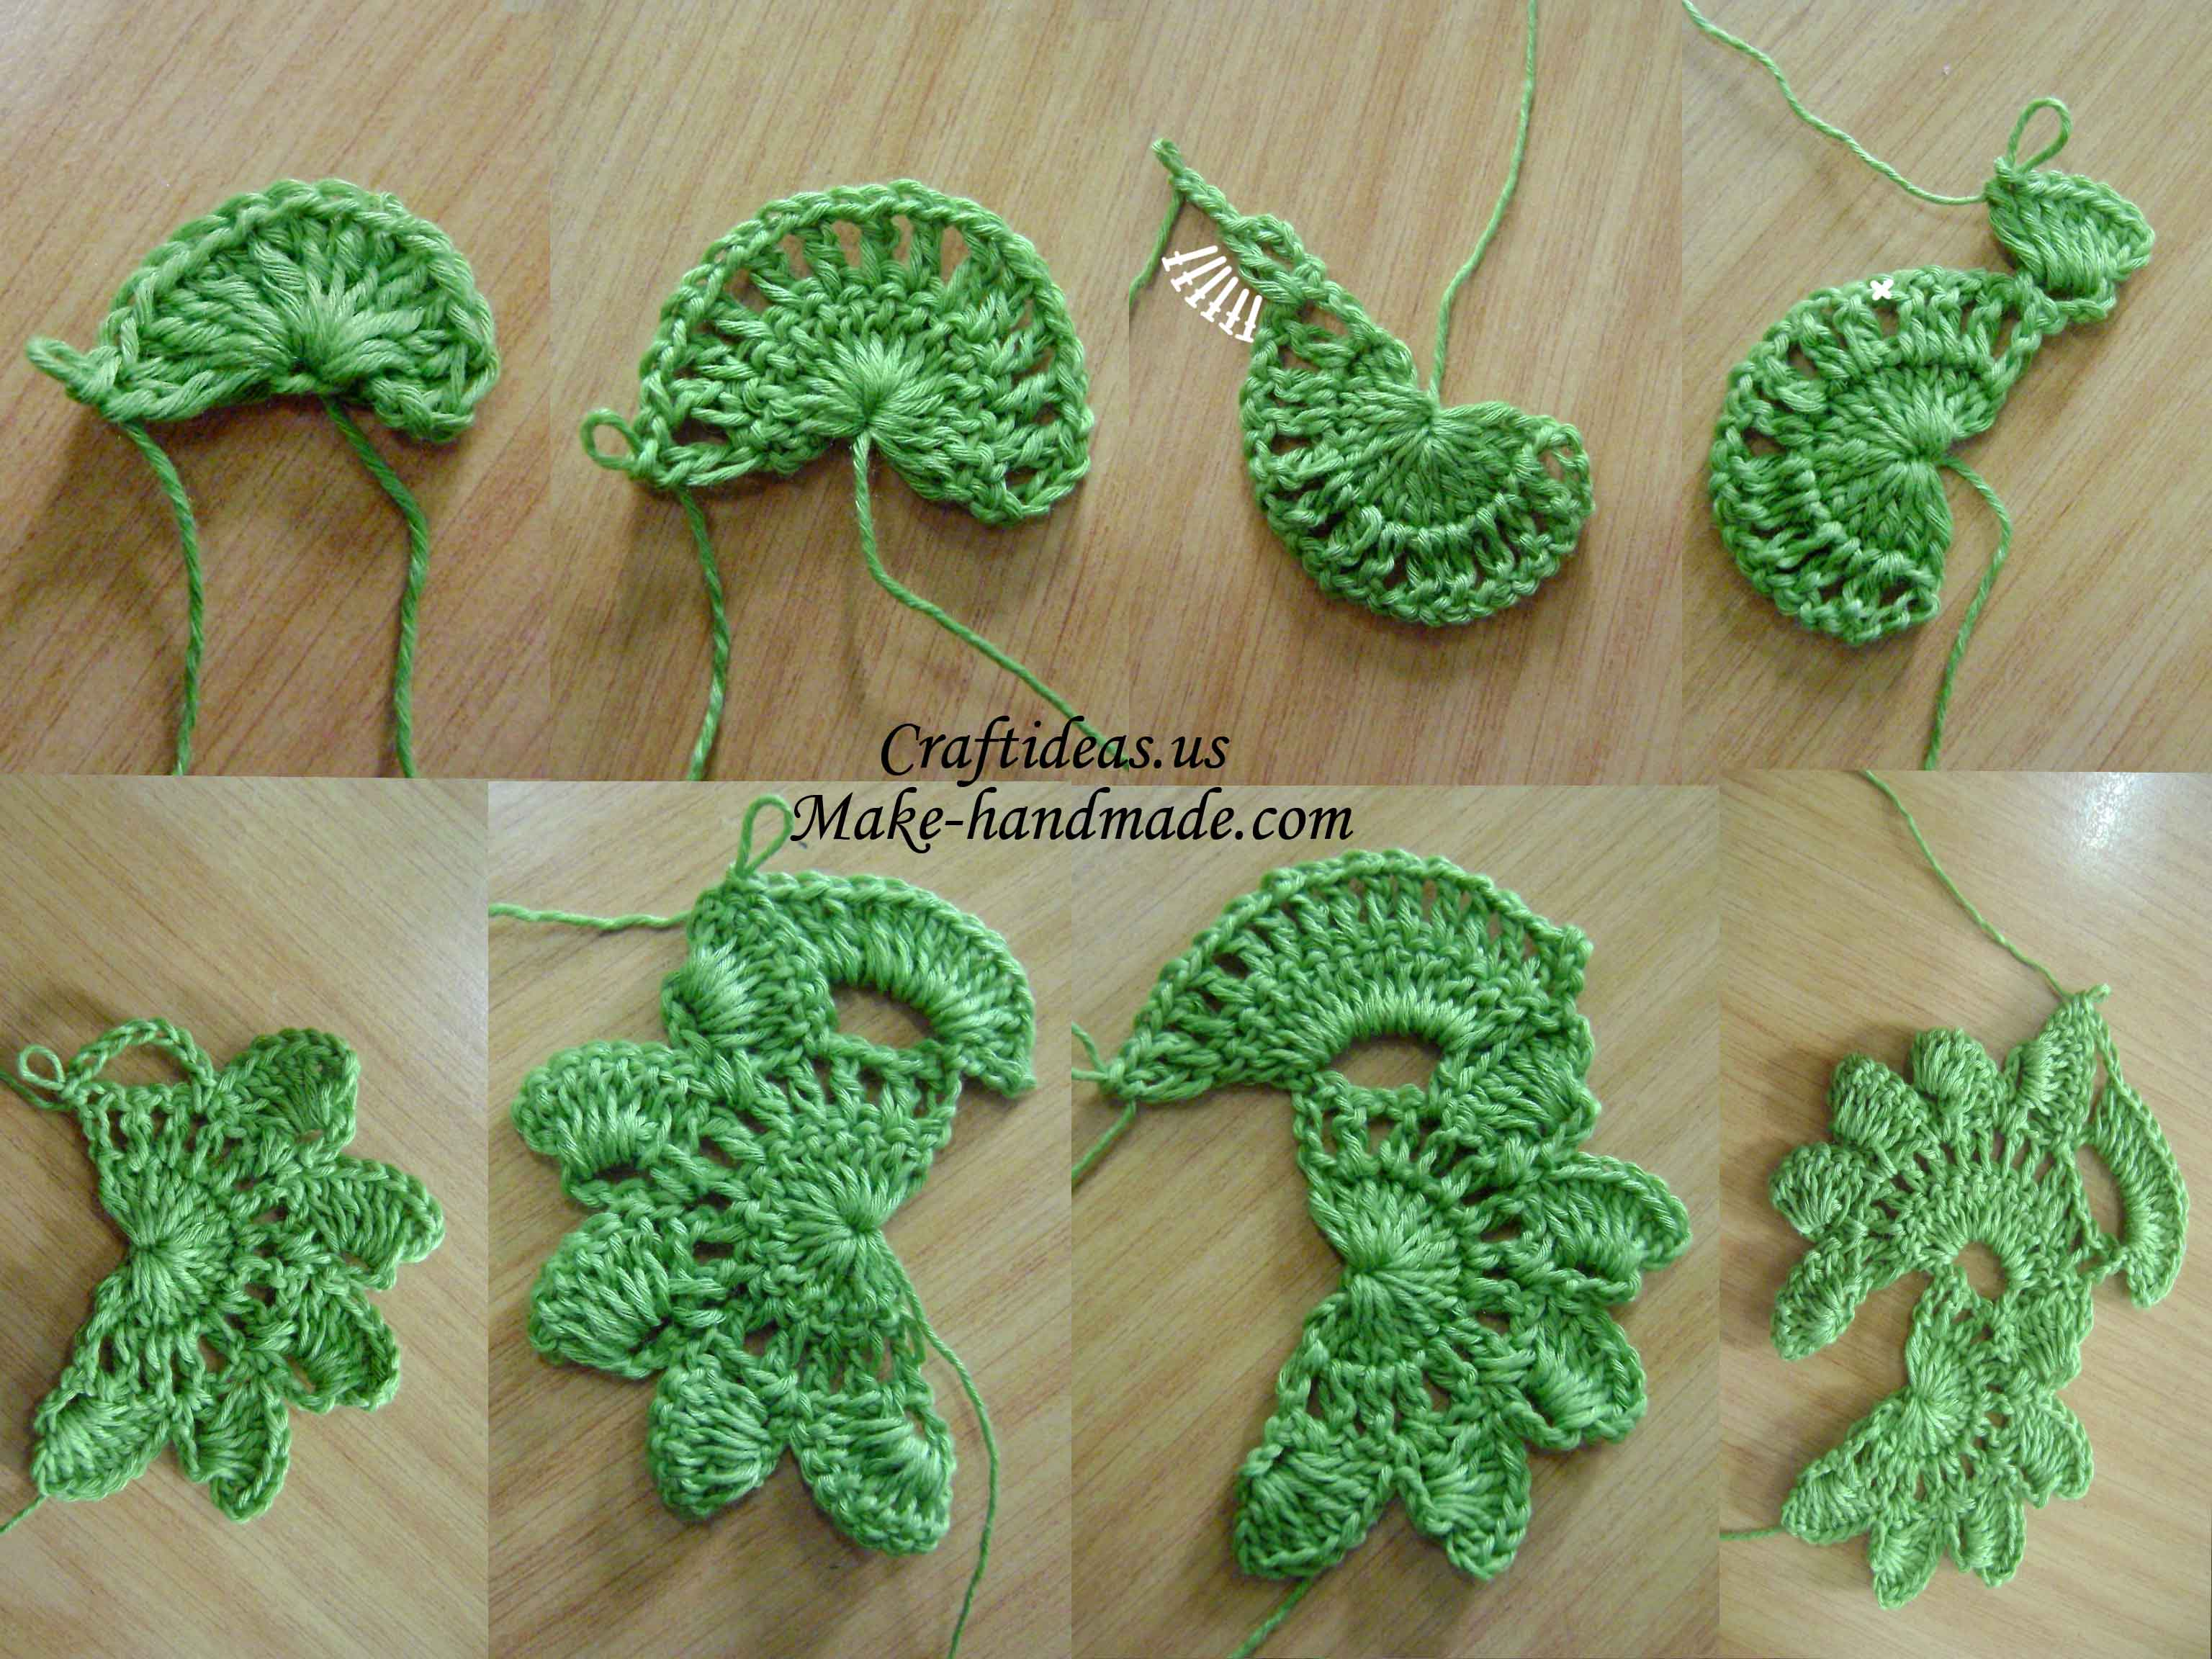 Crochet Patterns Video Tutorial : ... crochet flowers tutorial leave a reply crochet tulip flower tutorial